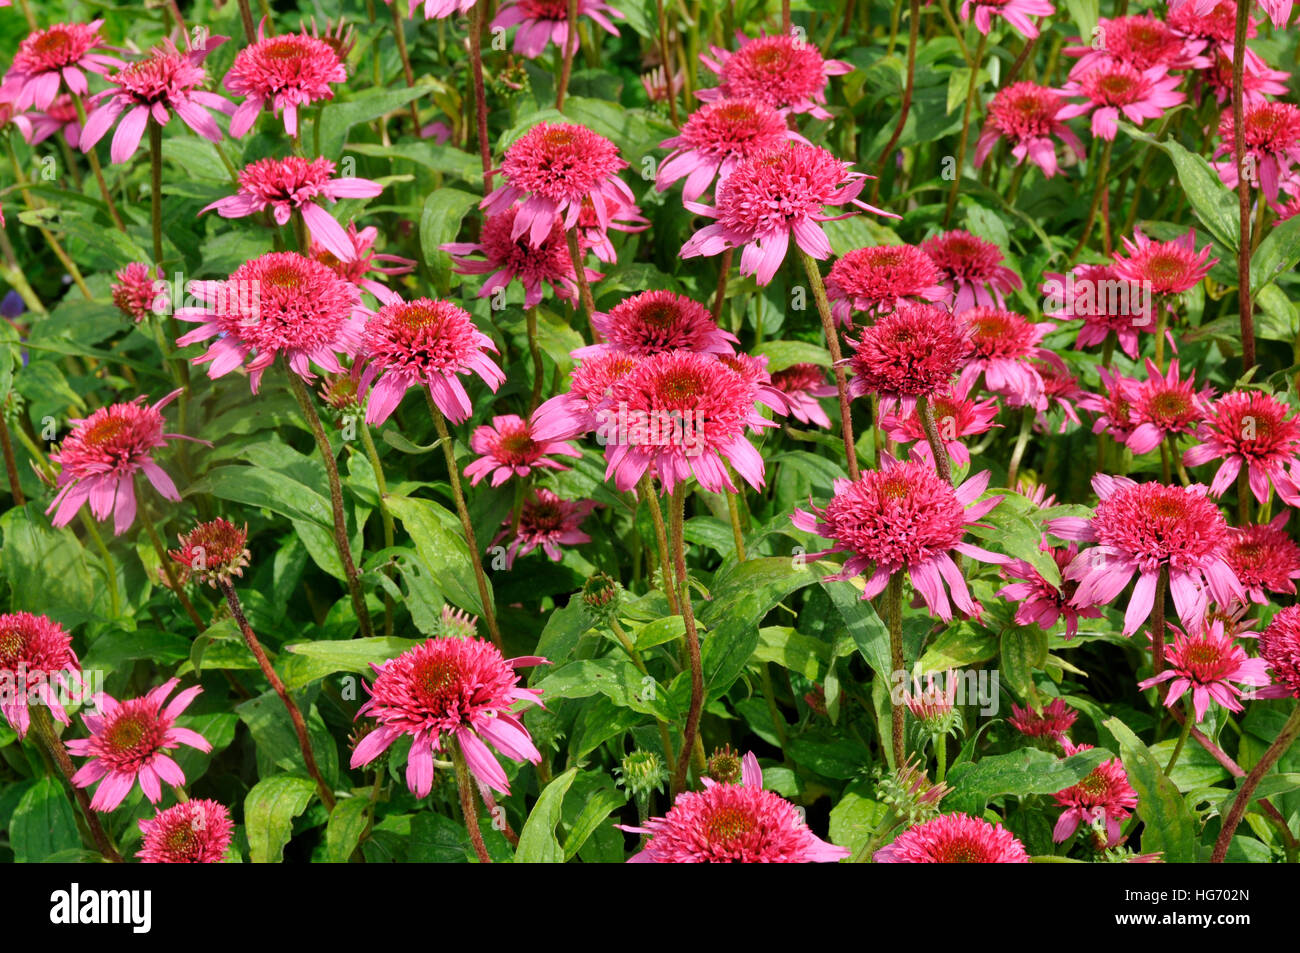 Echinacea purpurea 'Pink Double Delight' - Stock Image